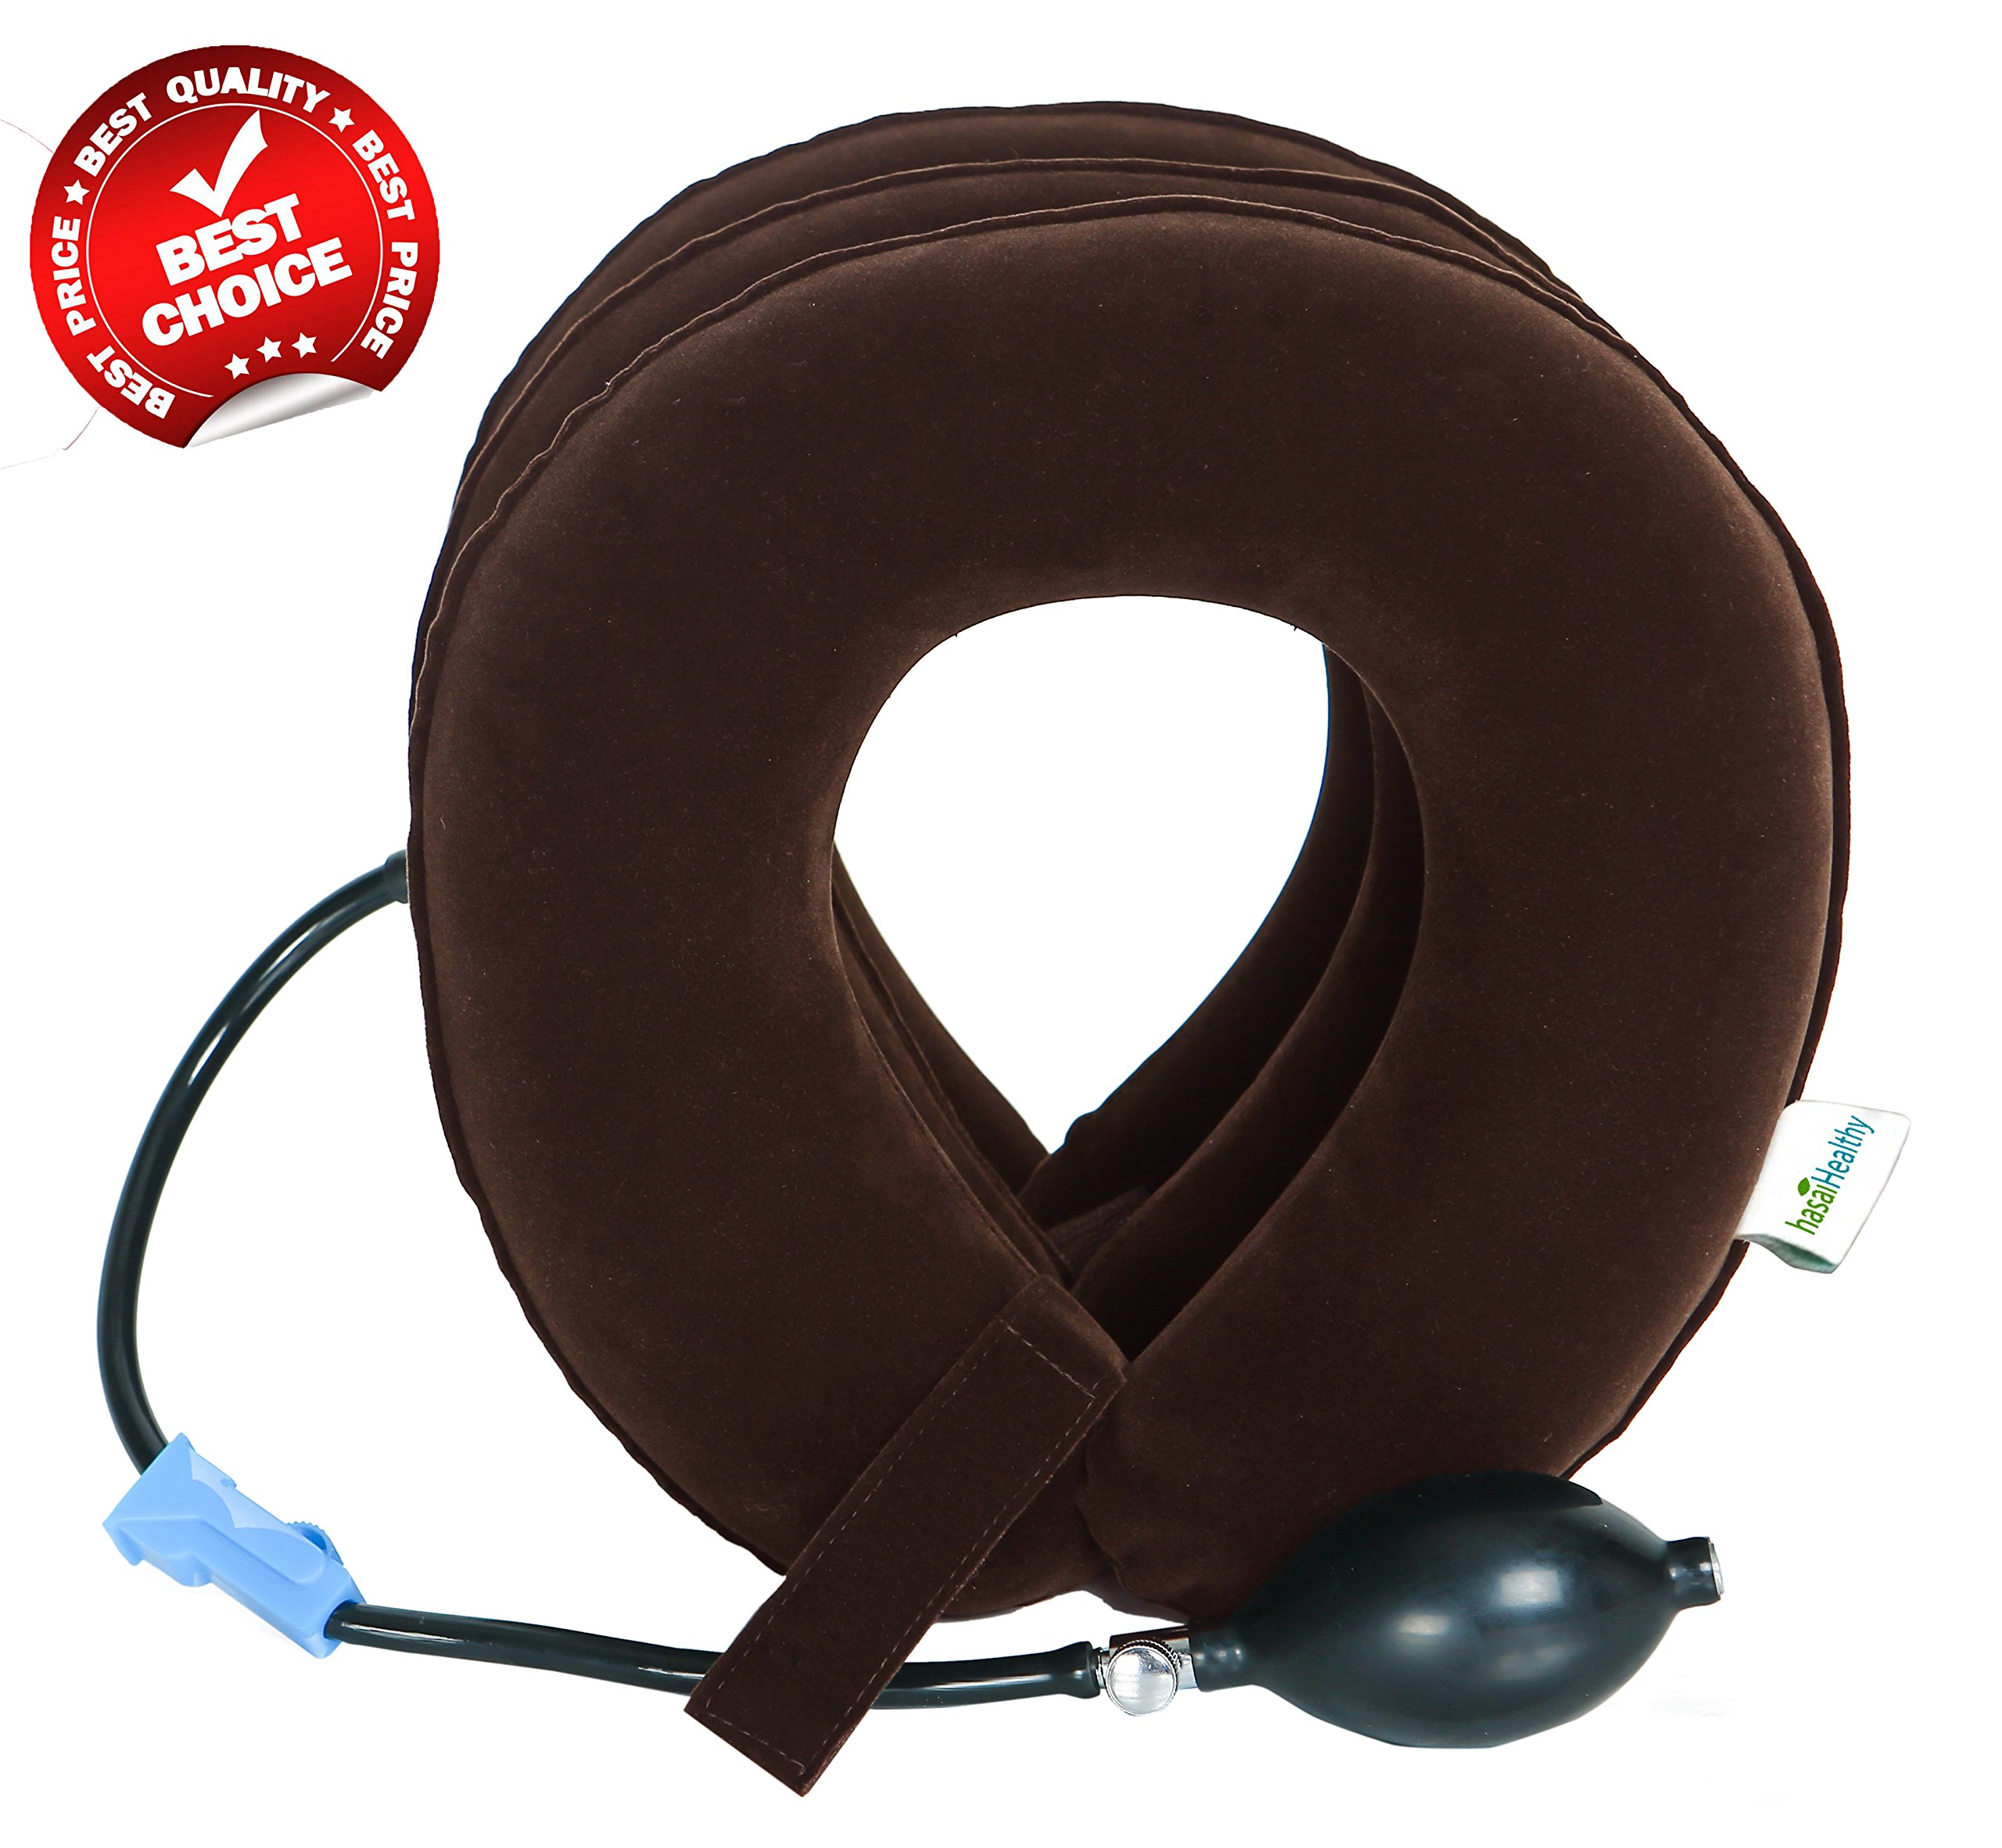 Hasai healthy - Cervical Neck Traction Device FDA Registered - Easy to Use for Chronic Neck and Shoulder Pain Relief, Inflatable Cervical Brace for Home and Travel (Brown)